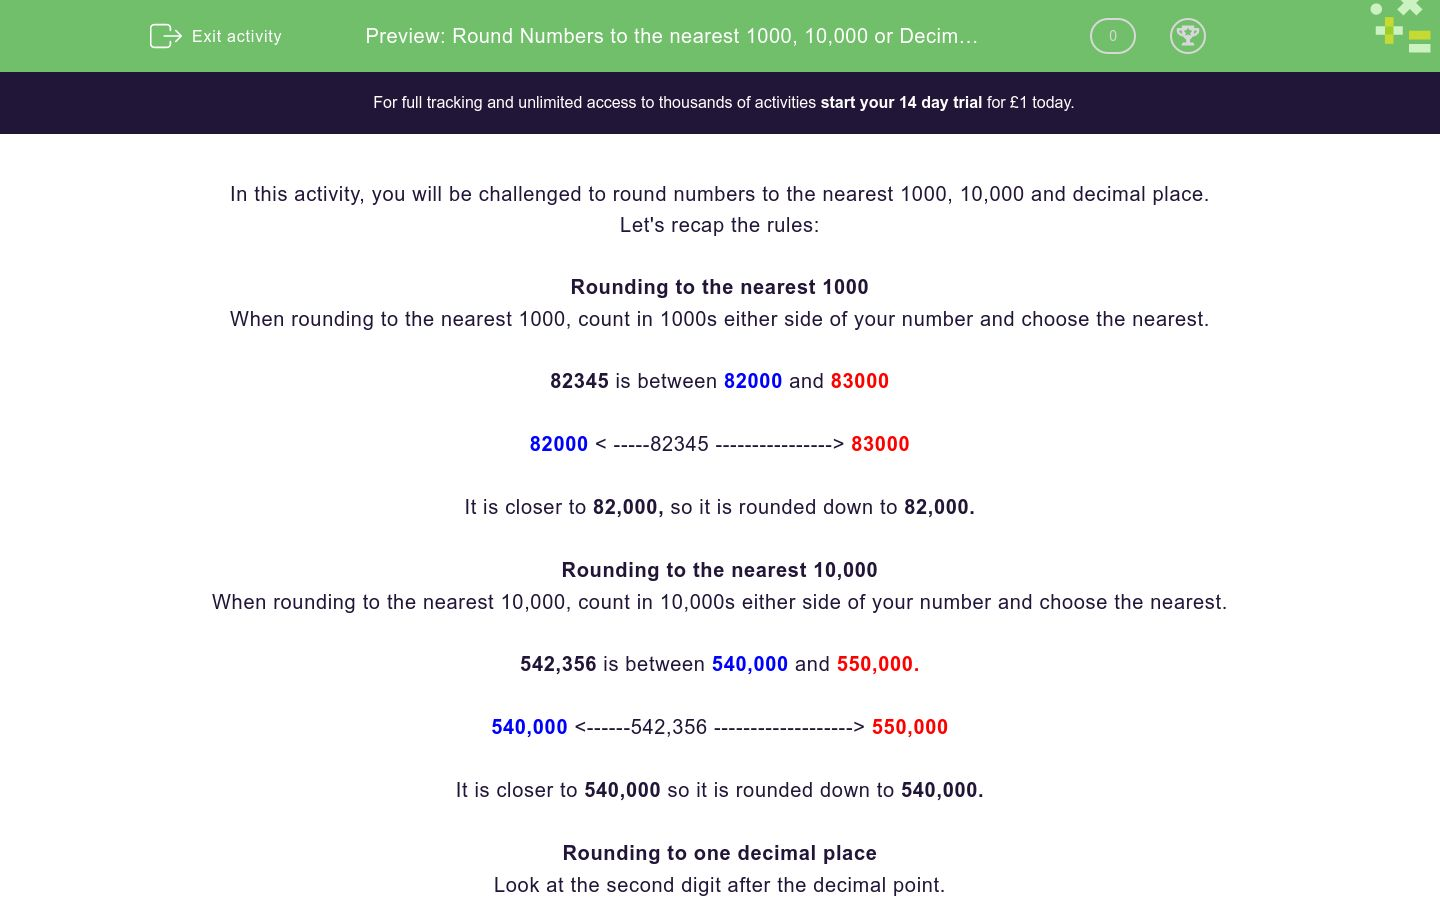 'Round Numbers to the nearest 1000, 10,000 or Decimal Place' worksheet